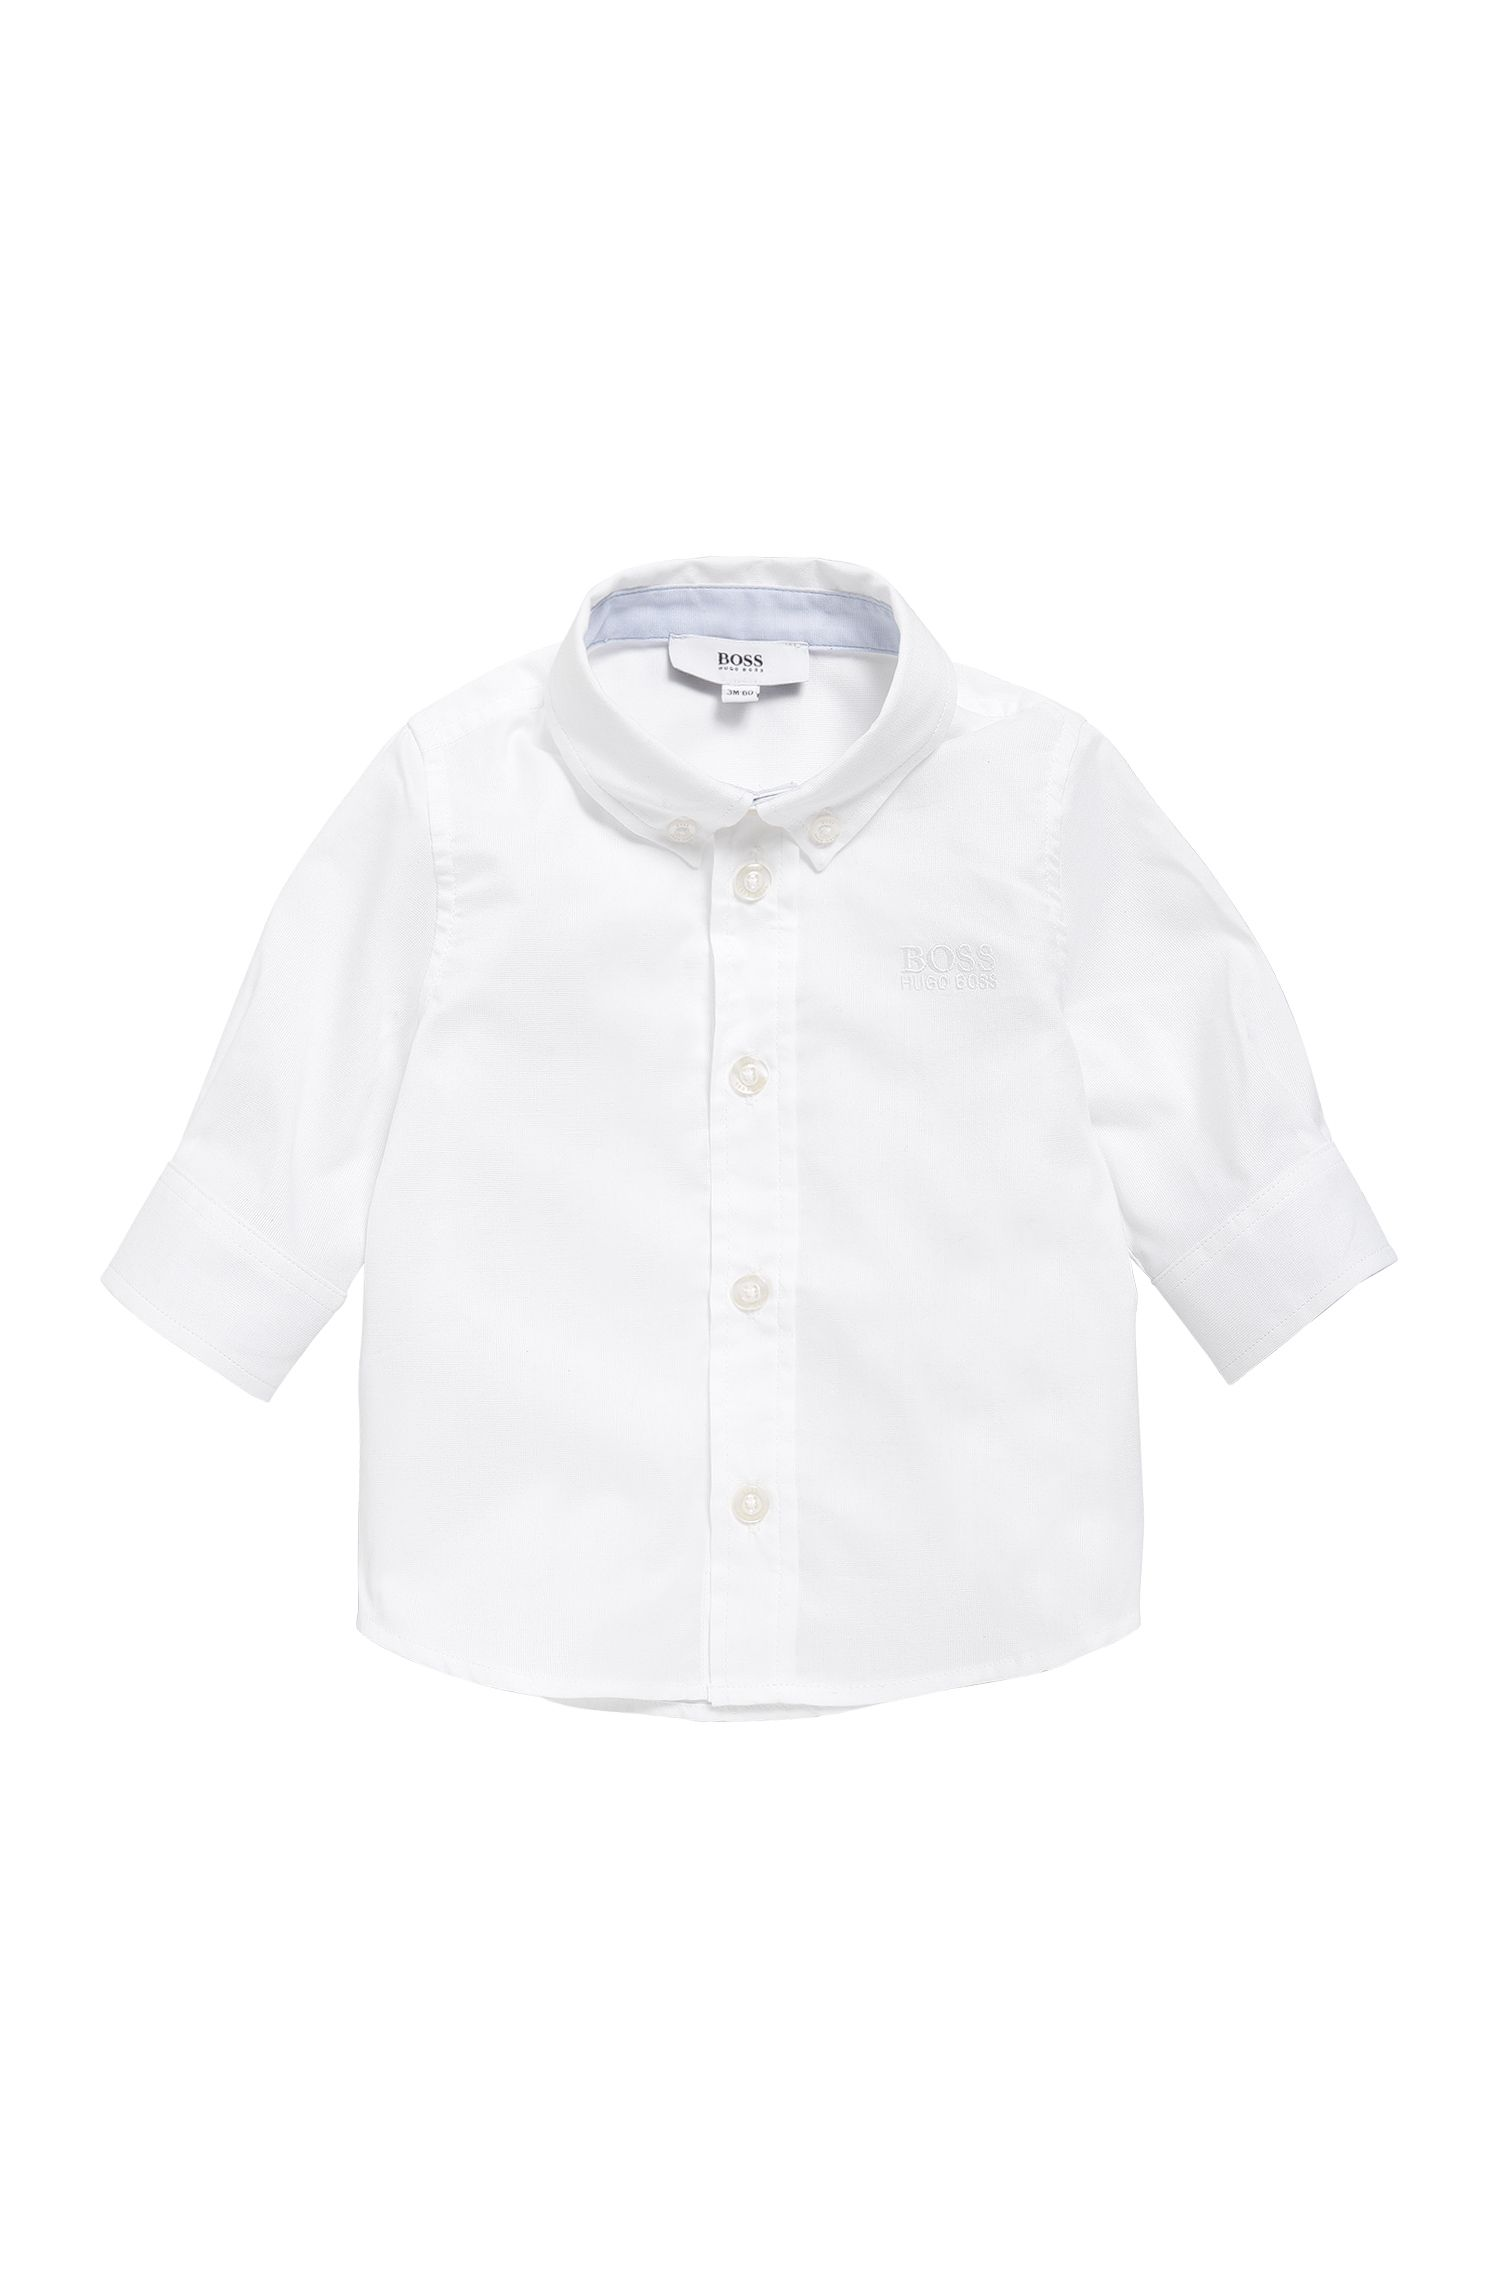 Kids' shirt in cotton with button-down collar: 'J05508'